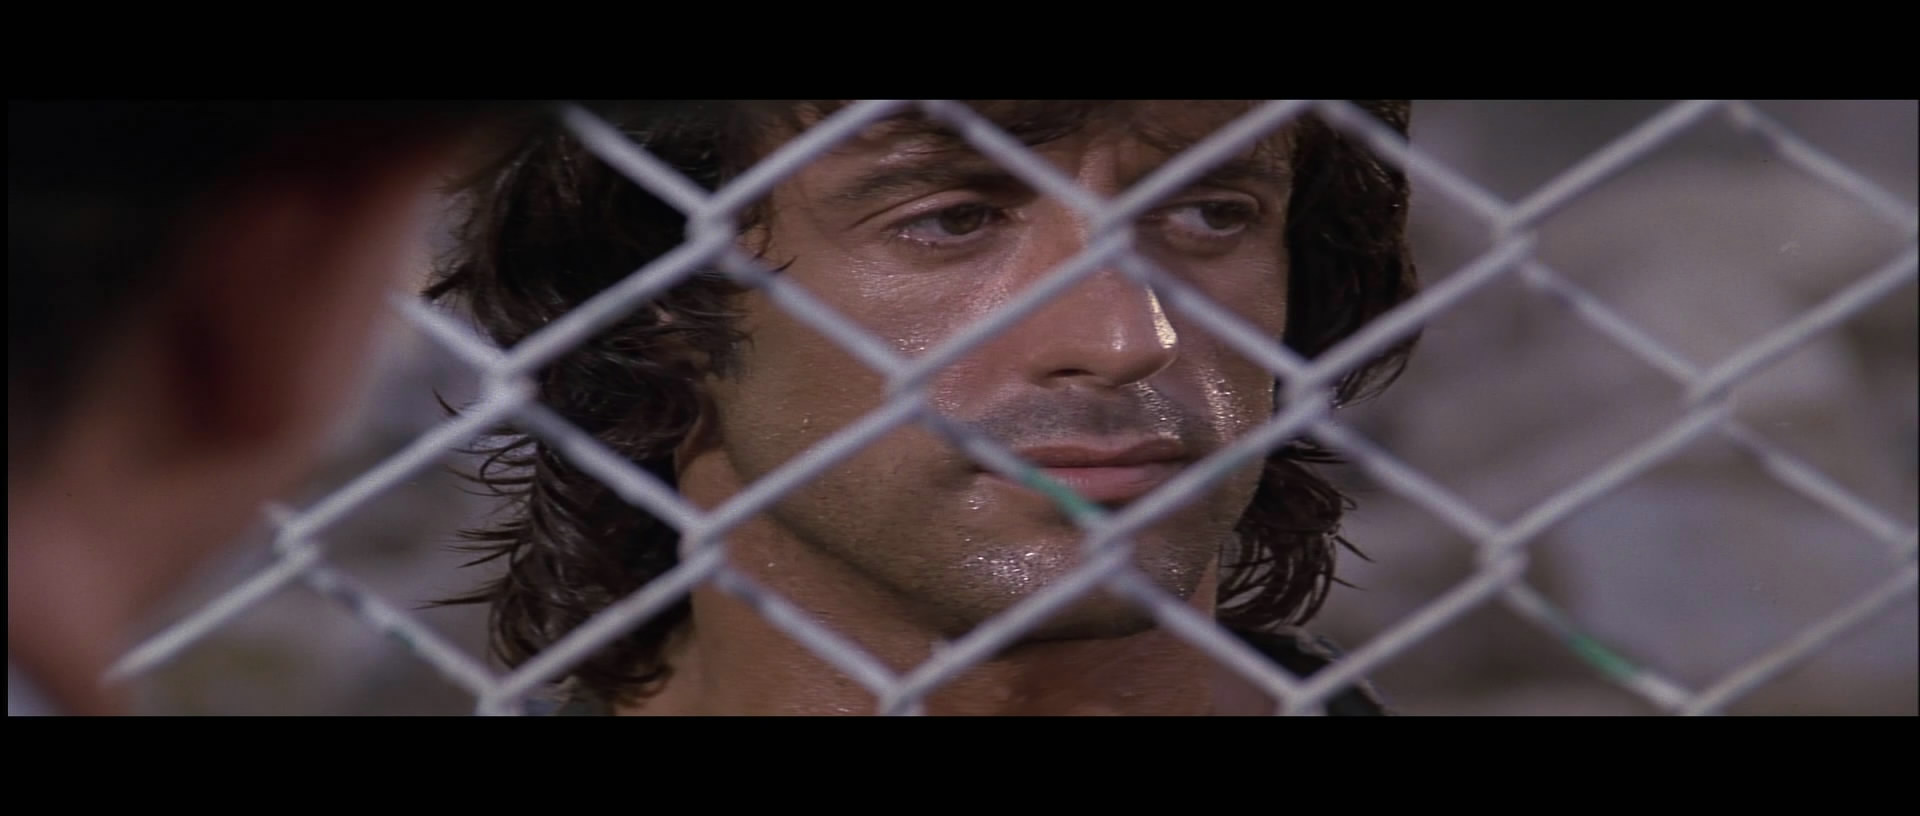 Rambo 1 3 1982 1988 German DTS 1080p HDDVD x264 SightHD mnvv2 ws preview 1